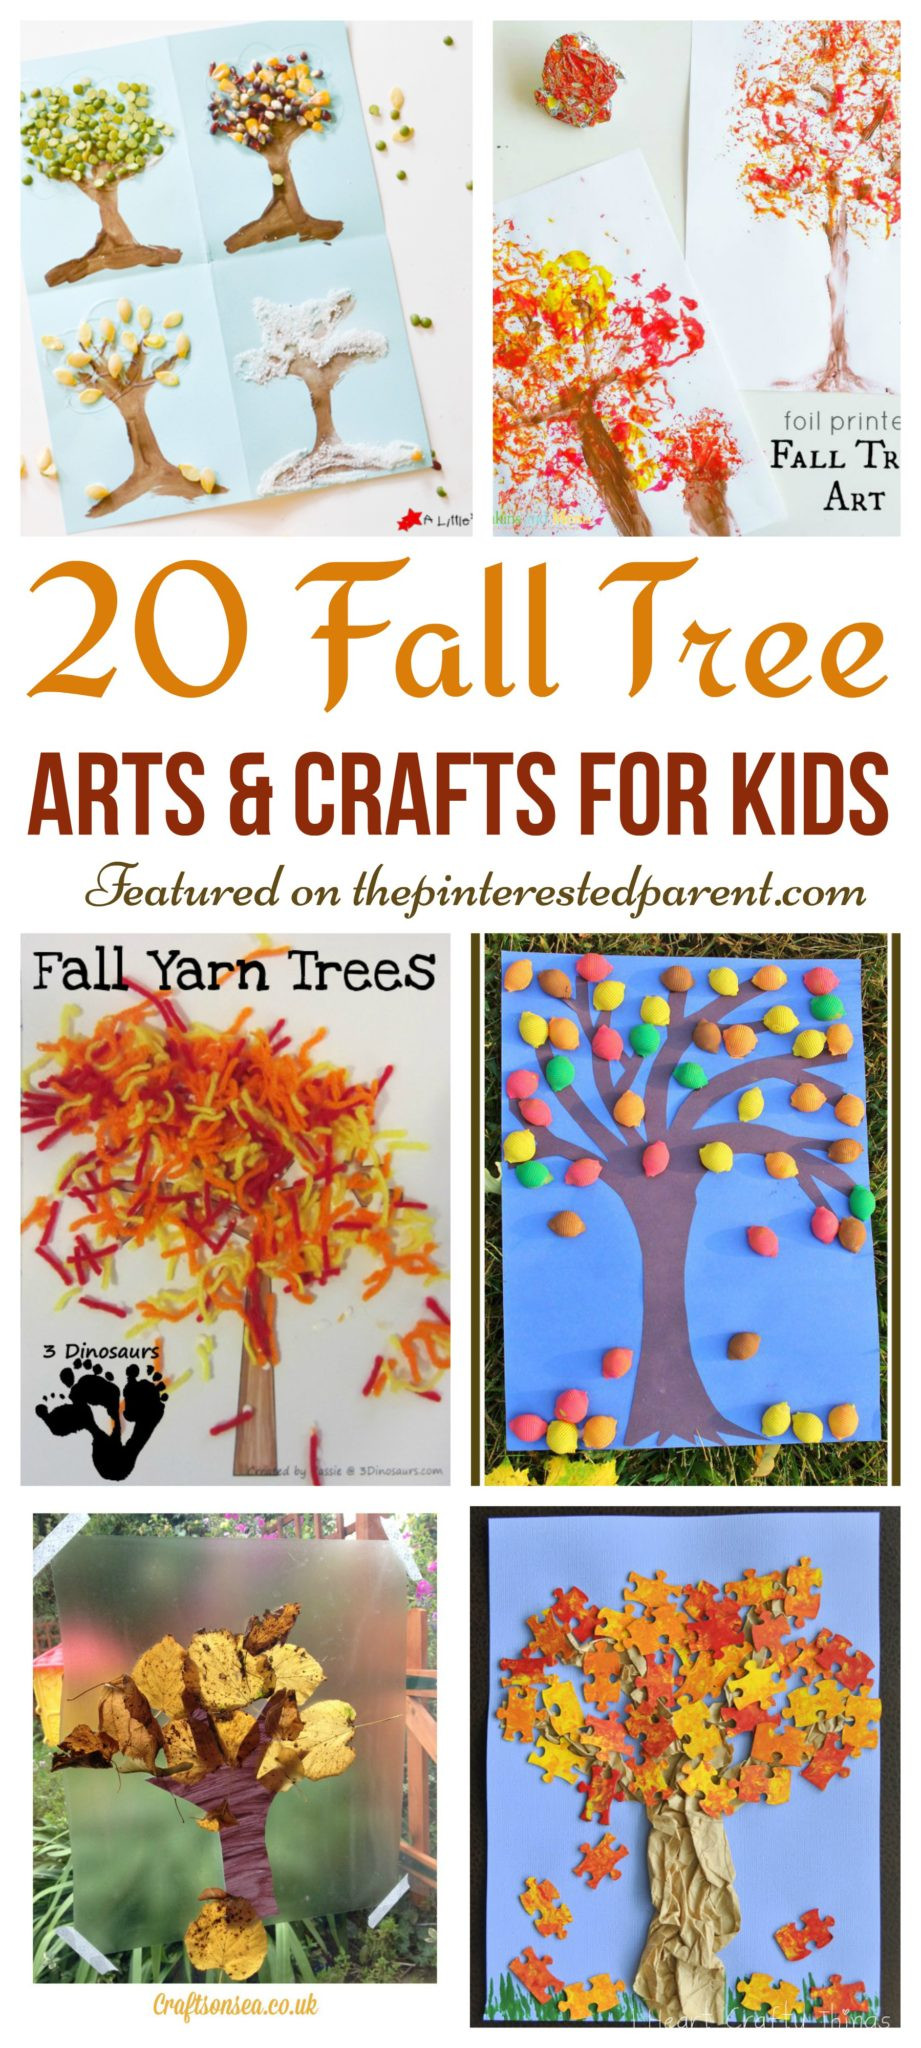 Preschool Art Project Ideas  20 Fall Tree Arts & Crafts Ideas For Kids – The